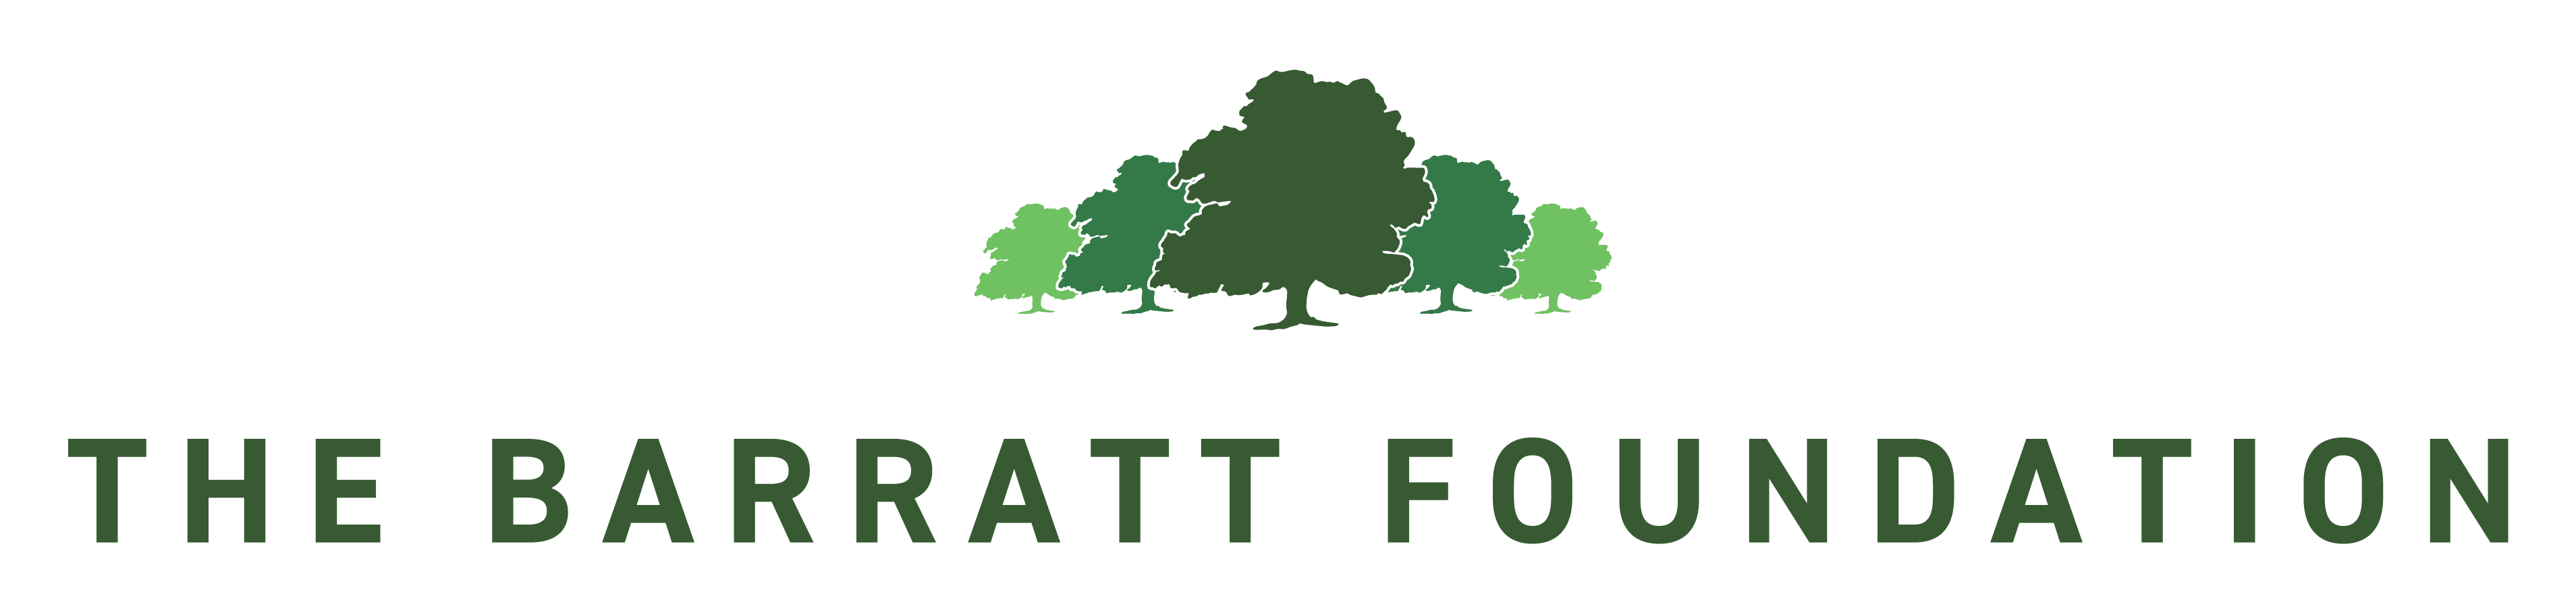 The Barratt Foundation